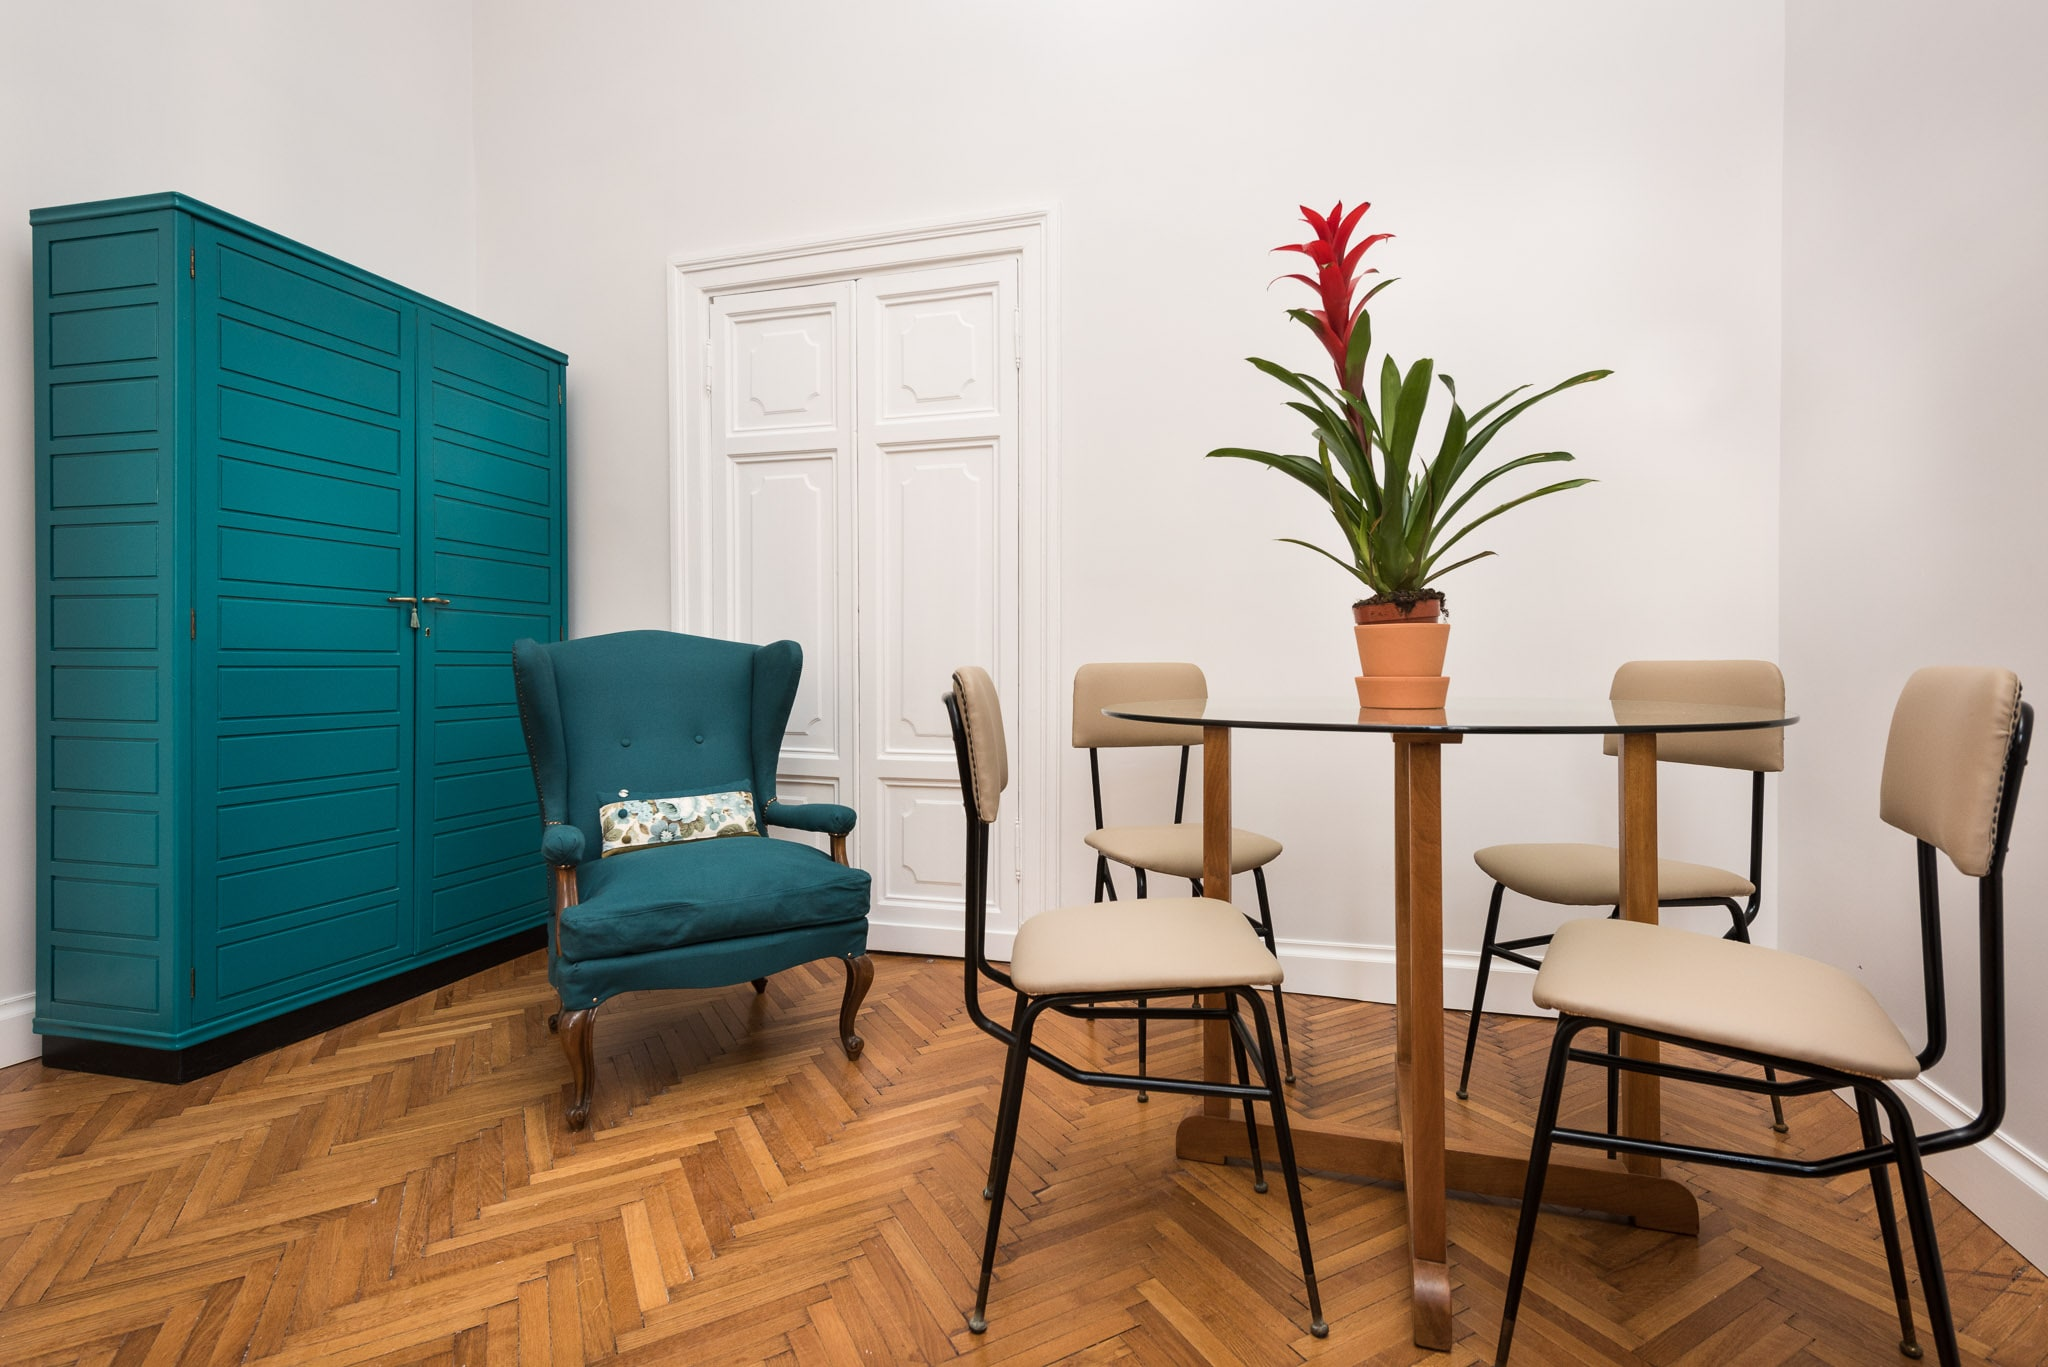 Property Image 2 - Charming 1 Bedroom Apartment with Rooftop Garden Access in the Heart of Rome